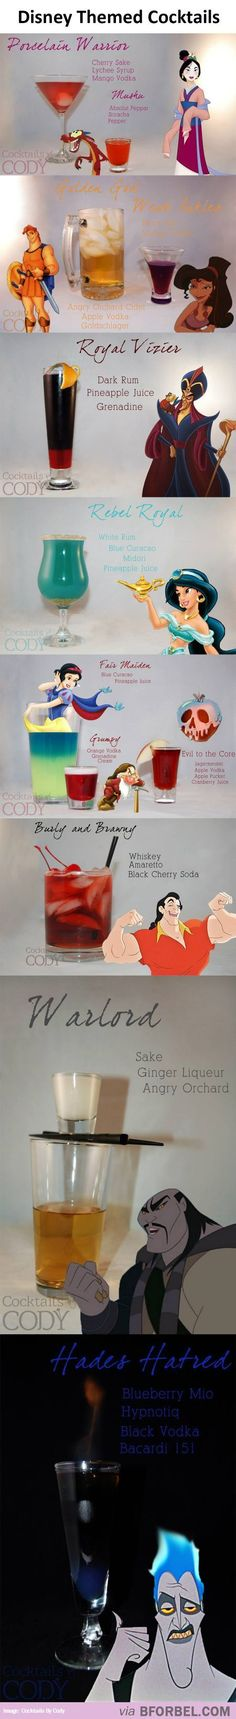 12 More Disney Themed Cocktails